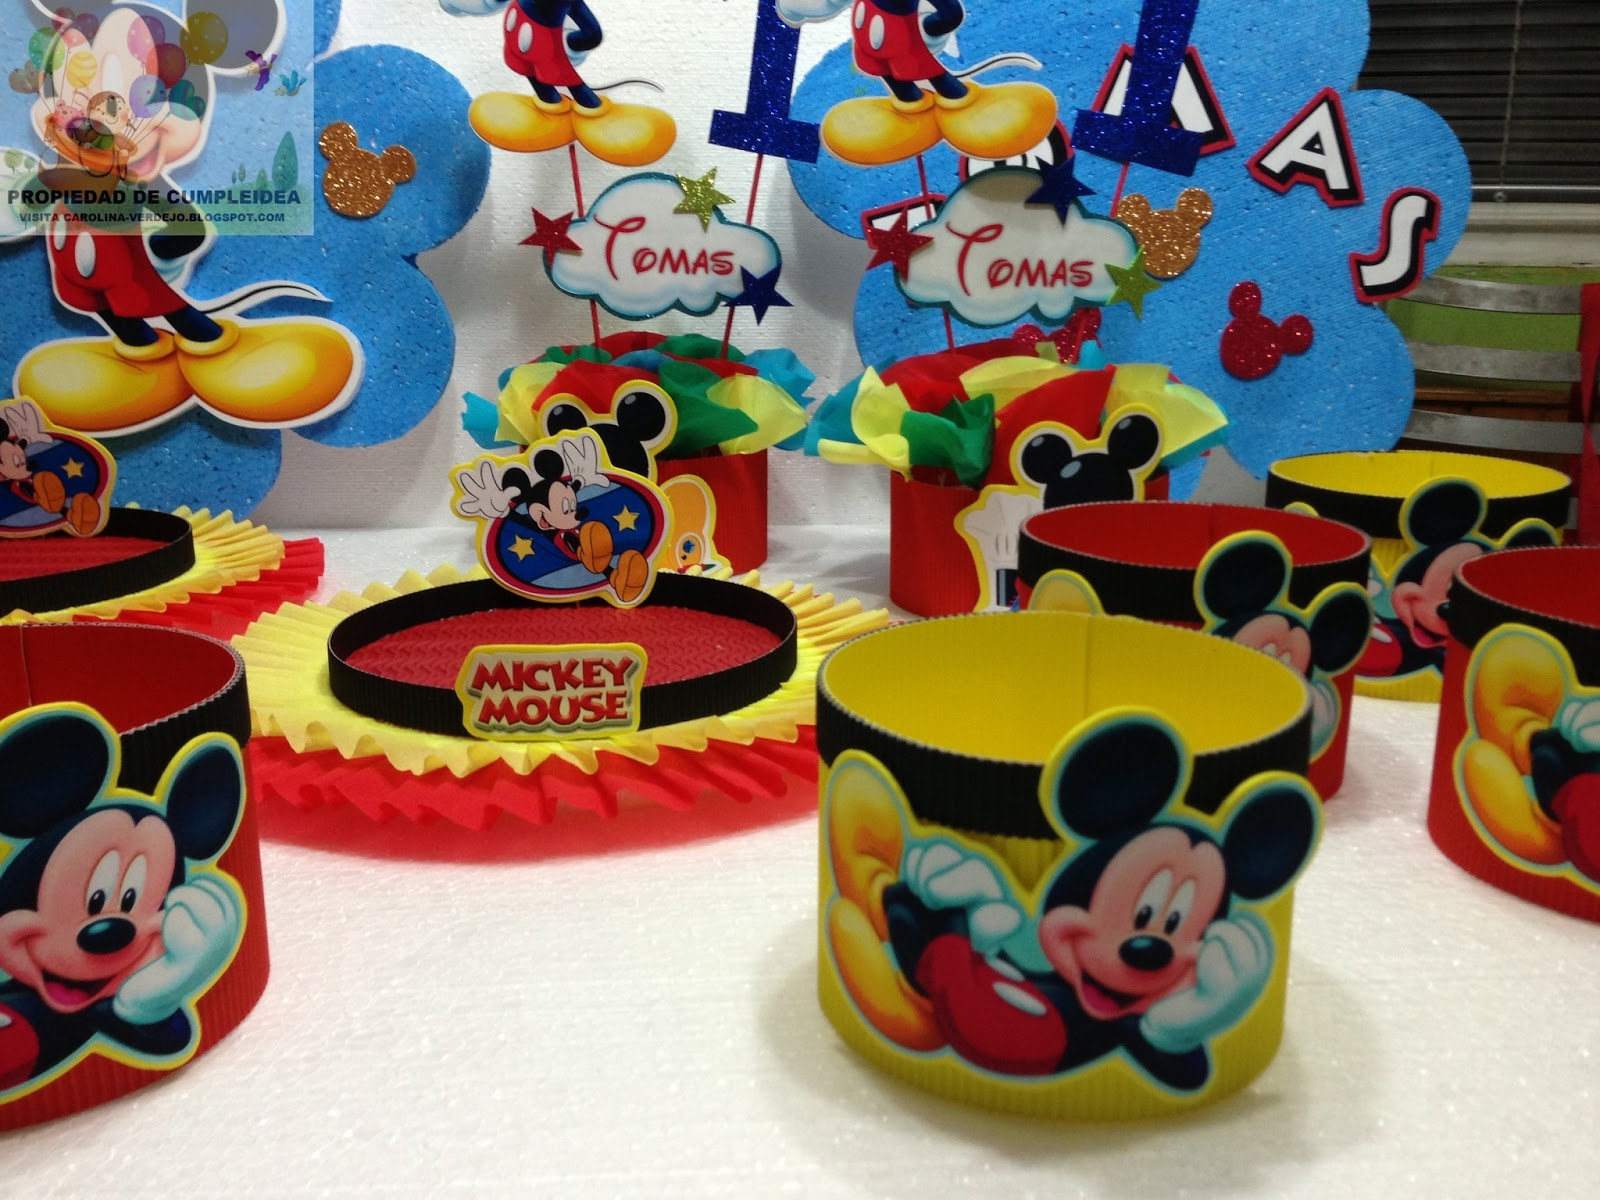 Decoraciones Infantiles De Mickey Decoraciones Para Cumple Anos De Mickey Mouse Decoraciones